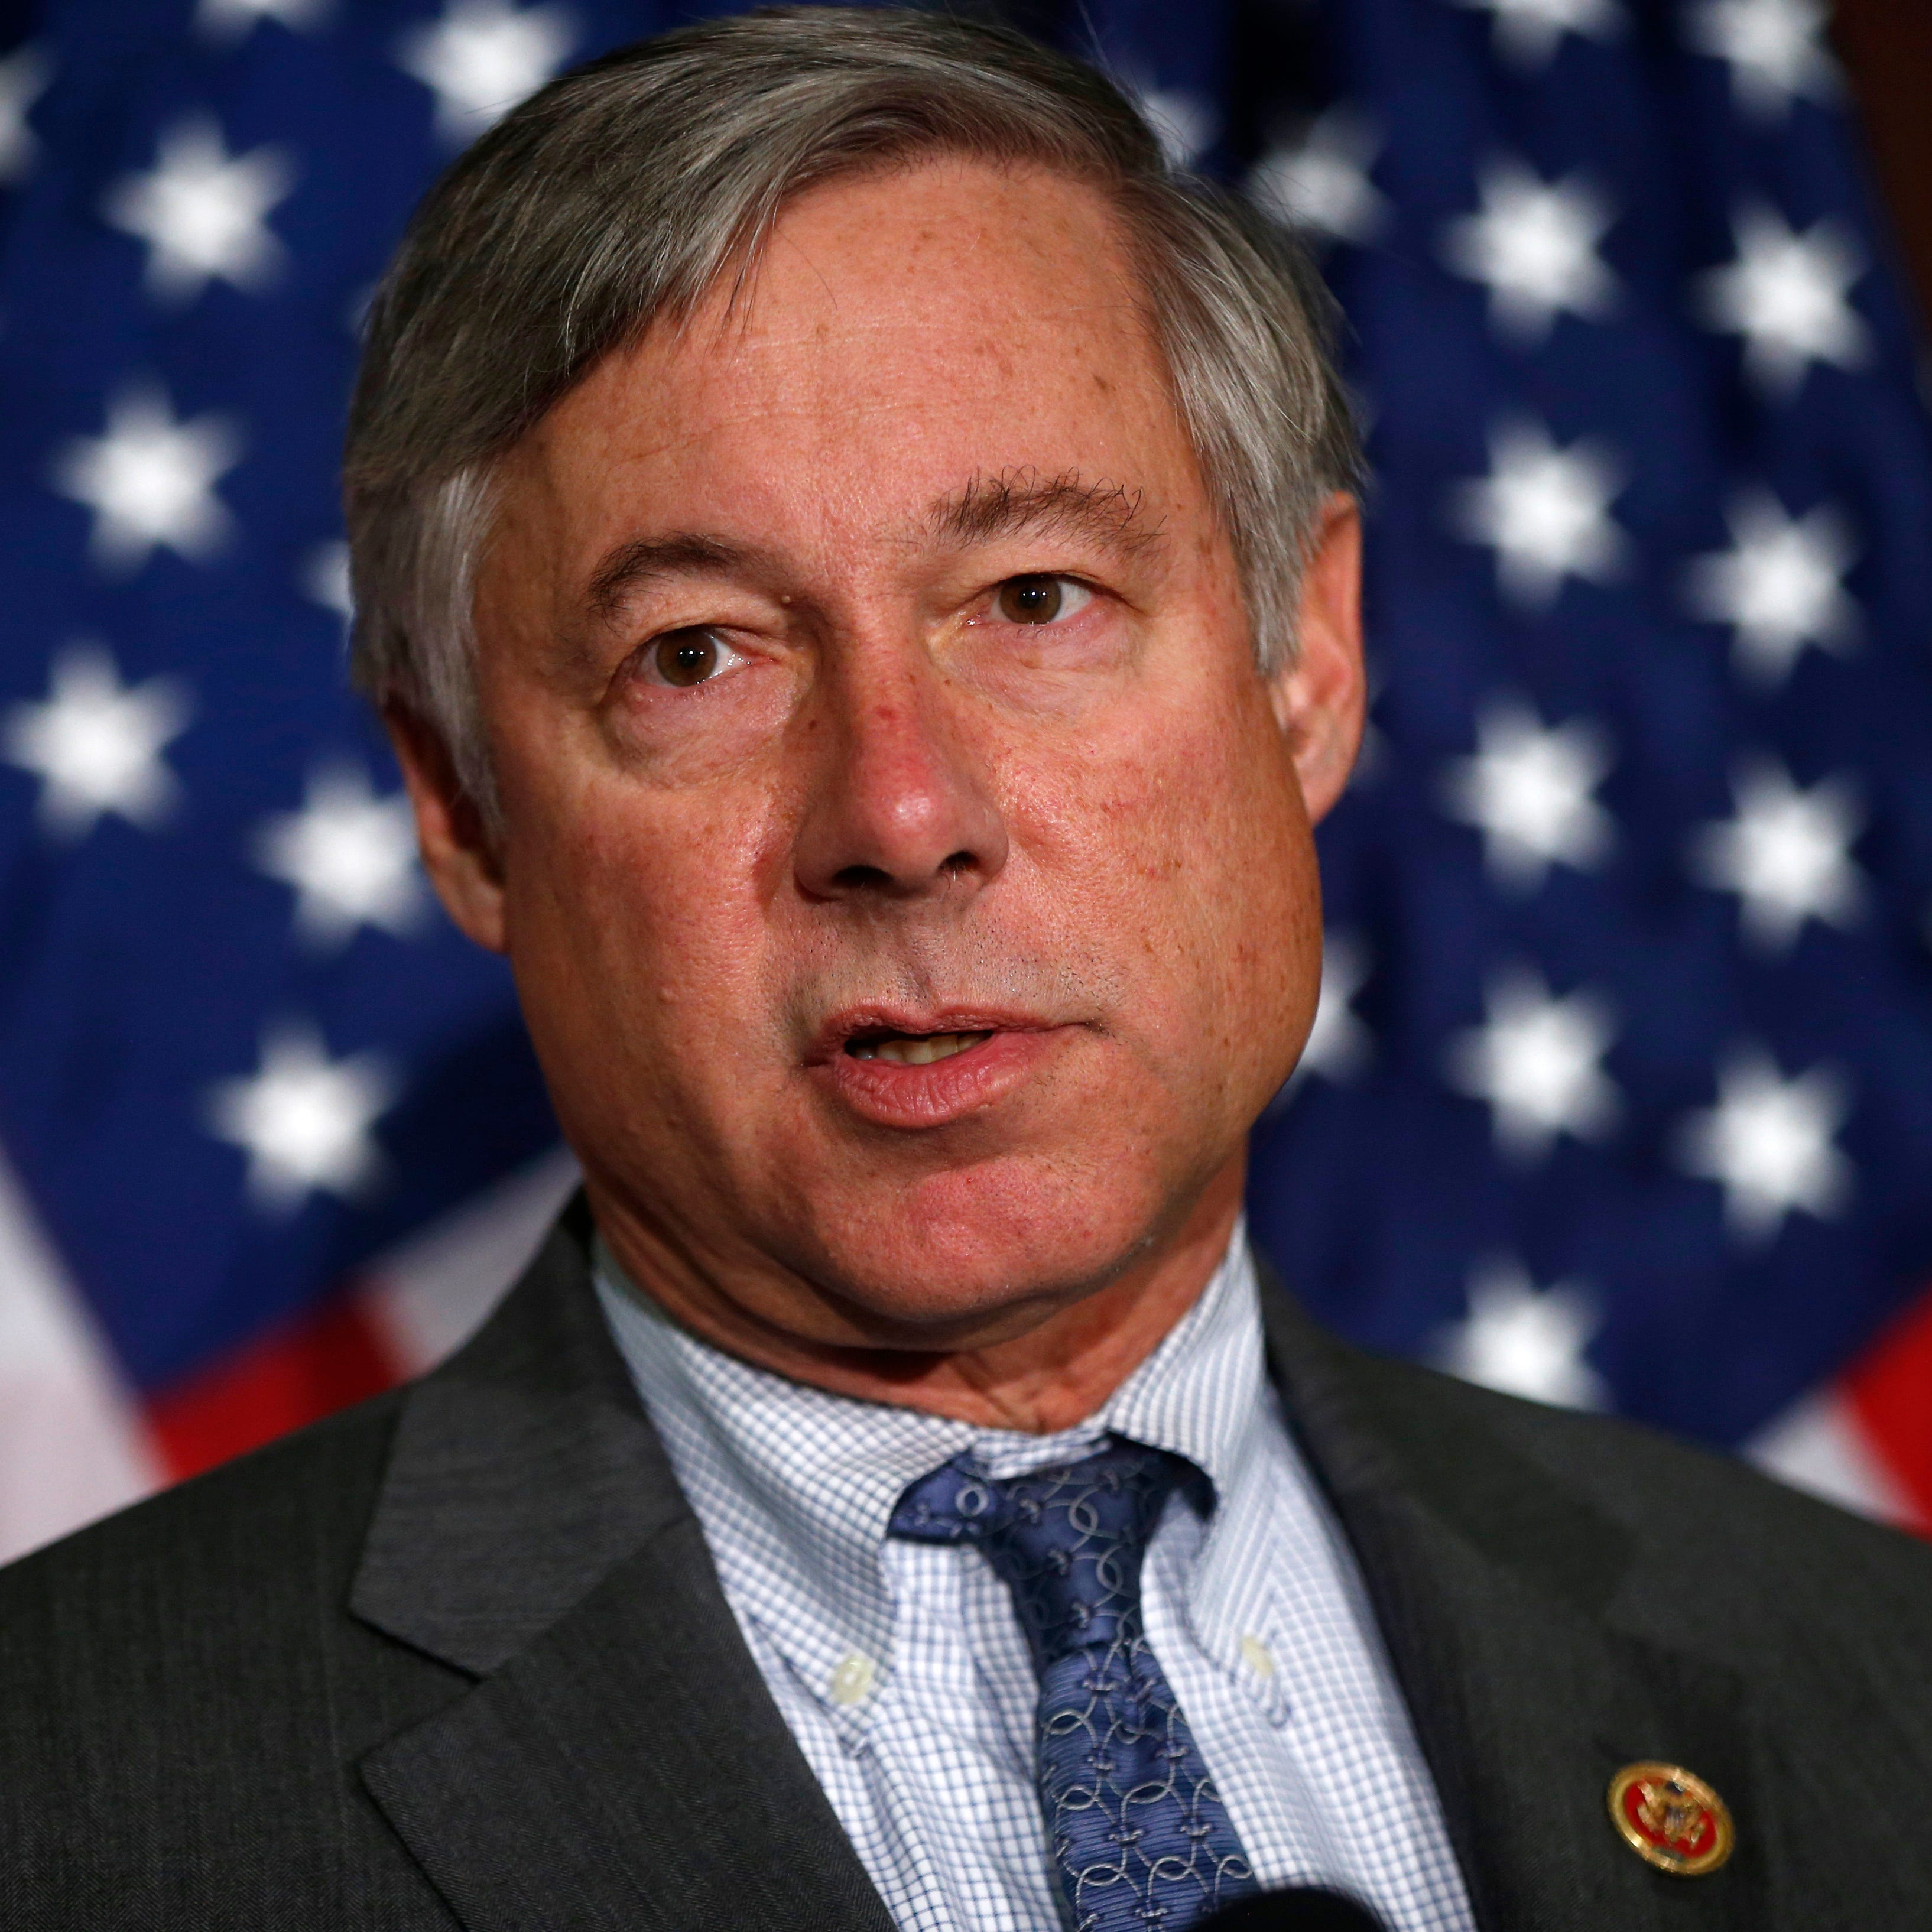 U.S. Rep. Upton files bill to block import car tariffs